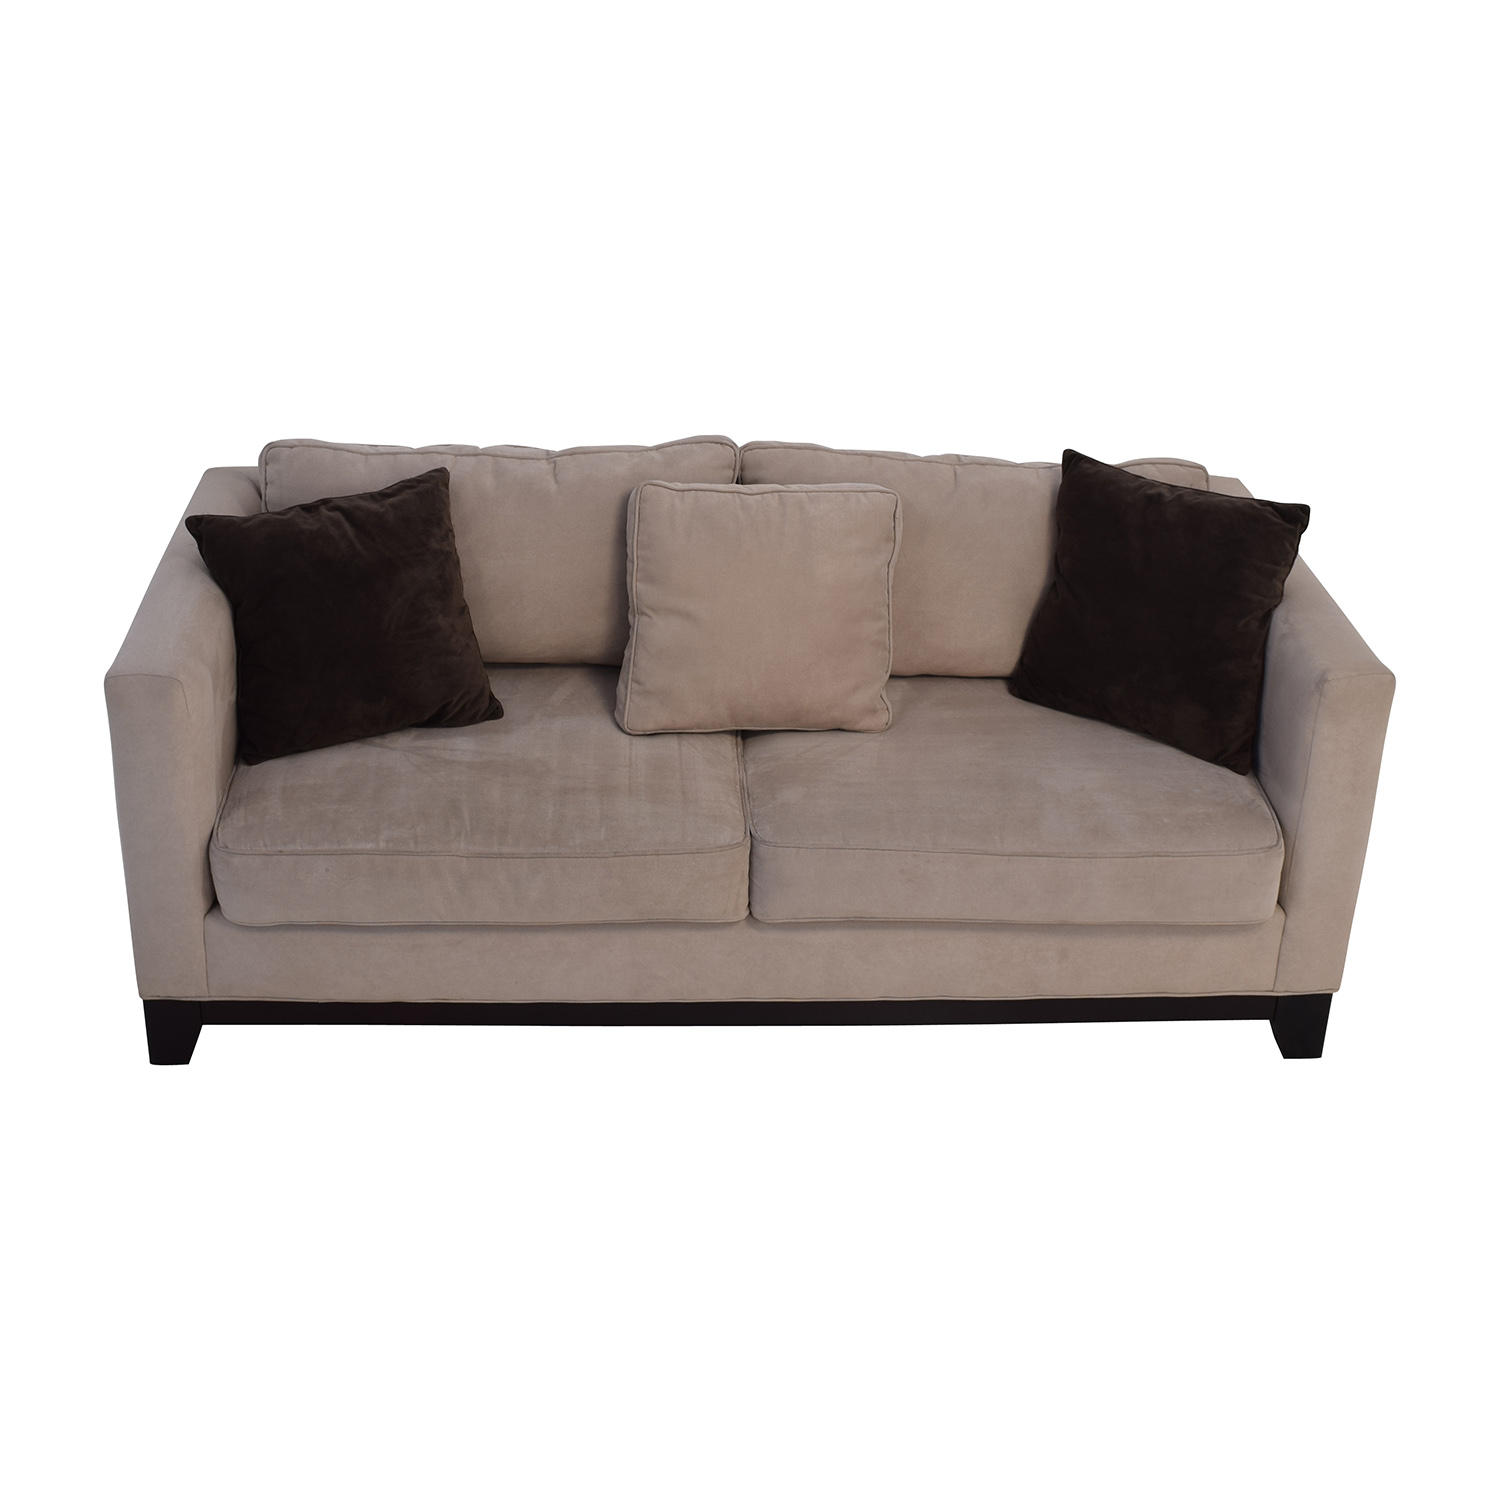 60% OFF - Bauhaus Bauhaus Beige Microsuede Couch with Toss Pillows / Sofas